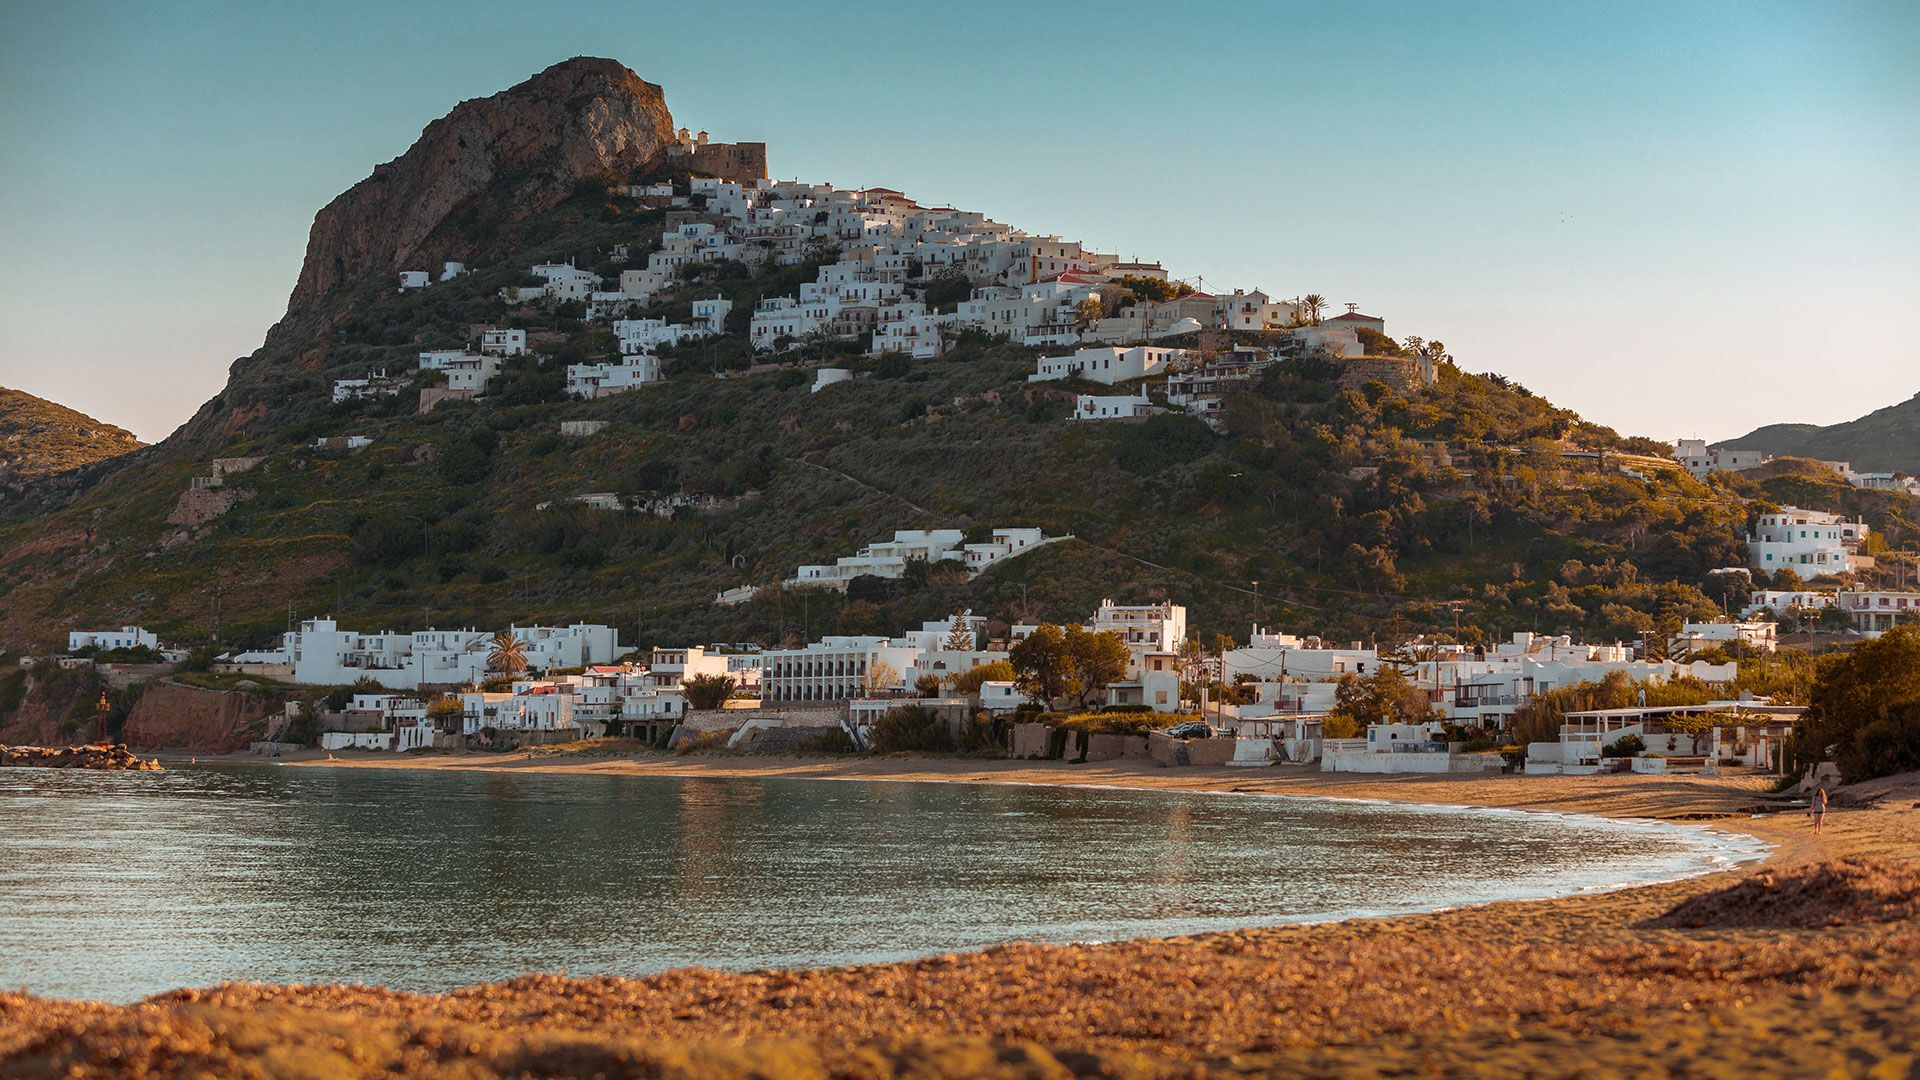 Magazia, the large and popular sandy beach, overwatching Hora, Skyros island